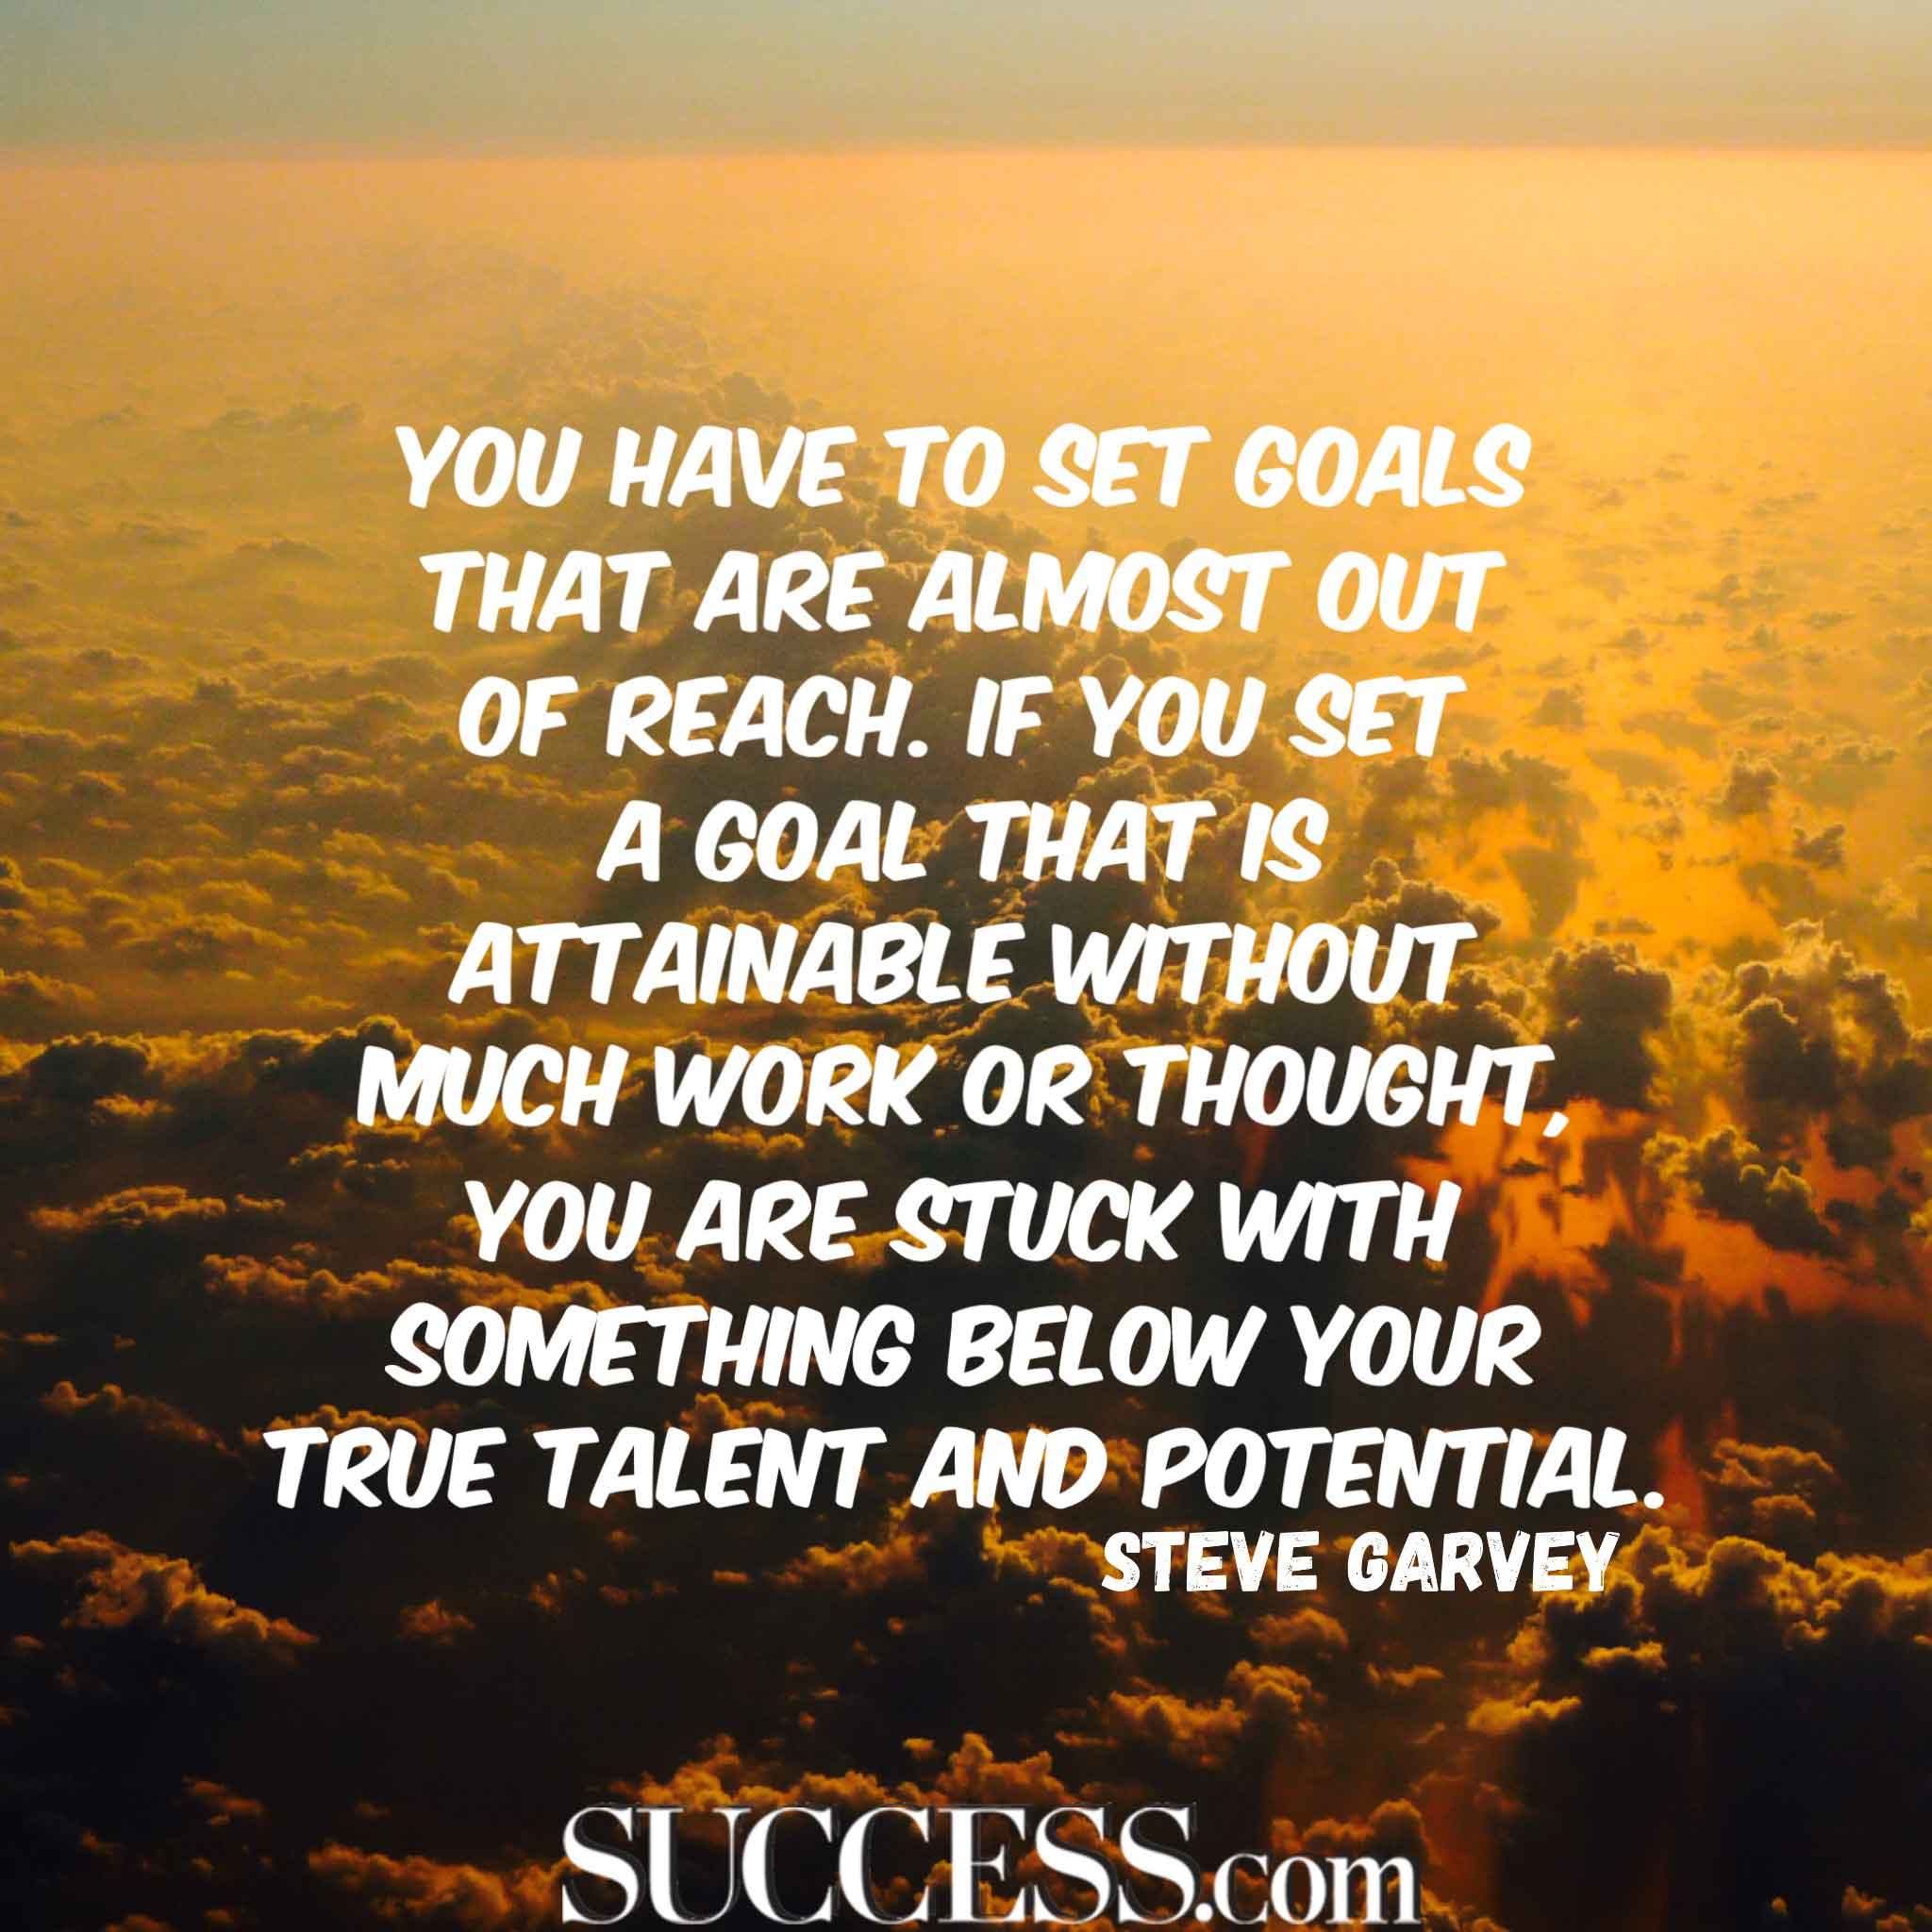 Motivational Quotes About Success: 18 Motivational Quotes About Successful Goal Setting